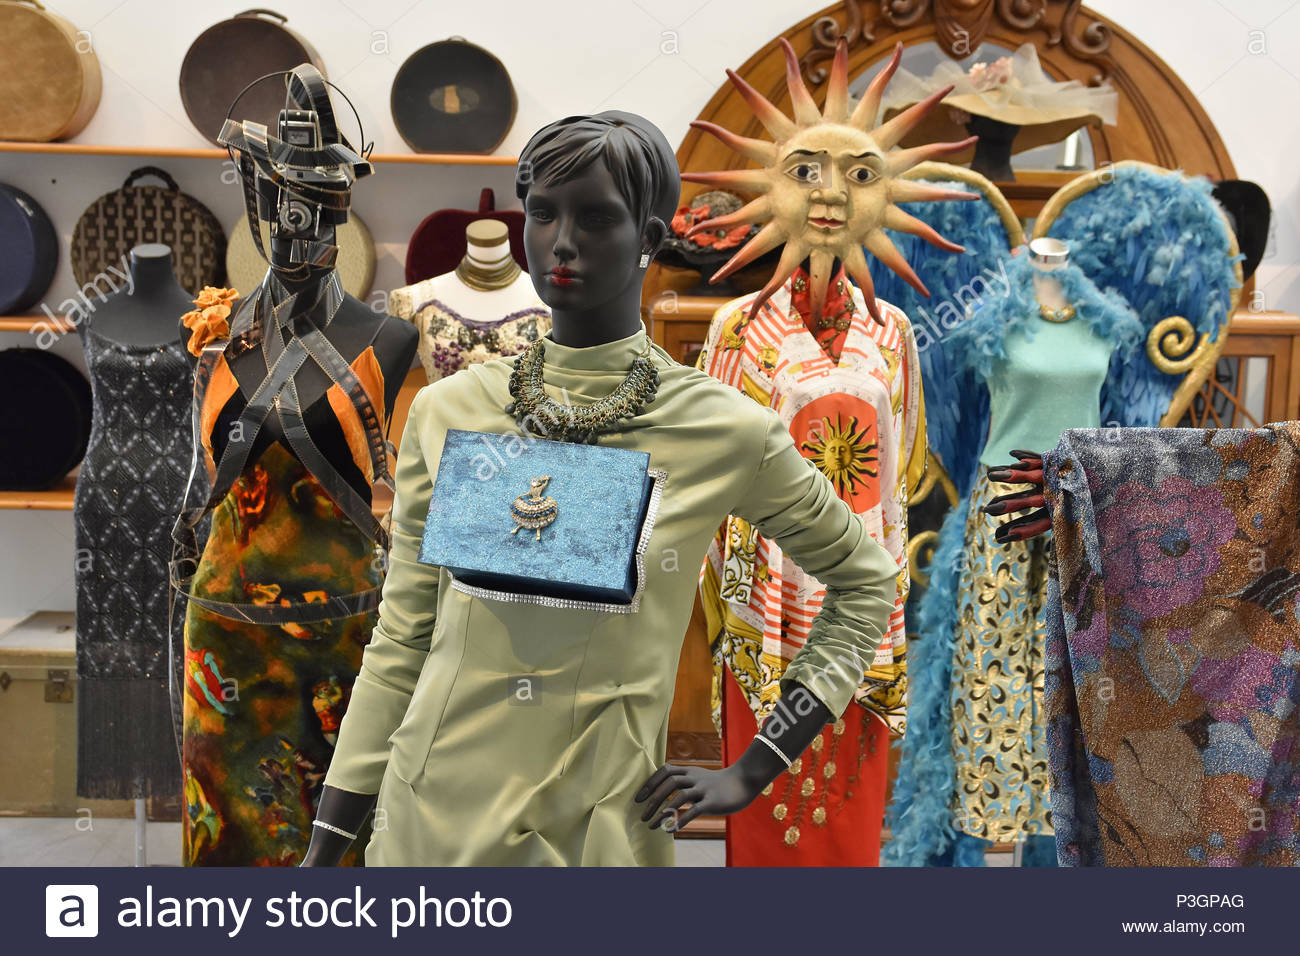 'Fashion Victim' - exhibition of the excessive and irrational consumerism of our society. Museum of Automobiles and Fashion in Malaga Spain. - Stock Image